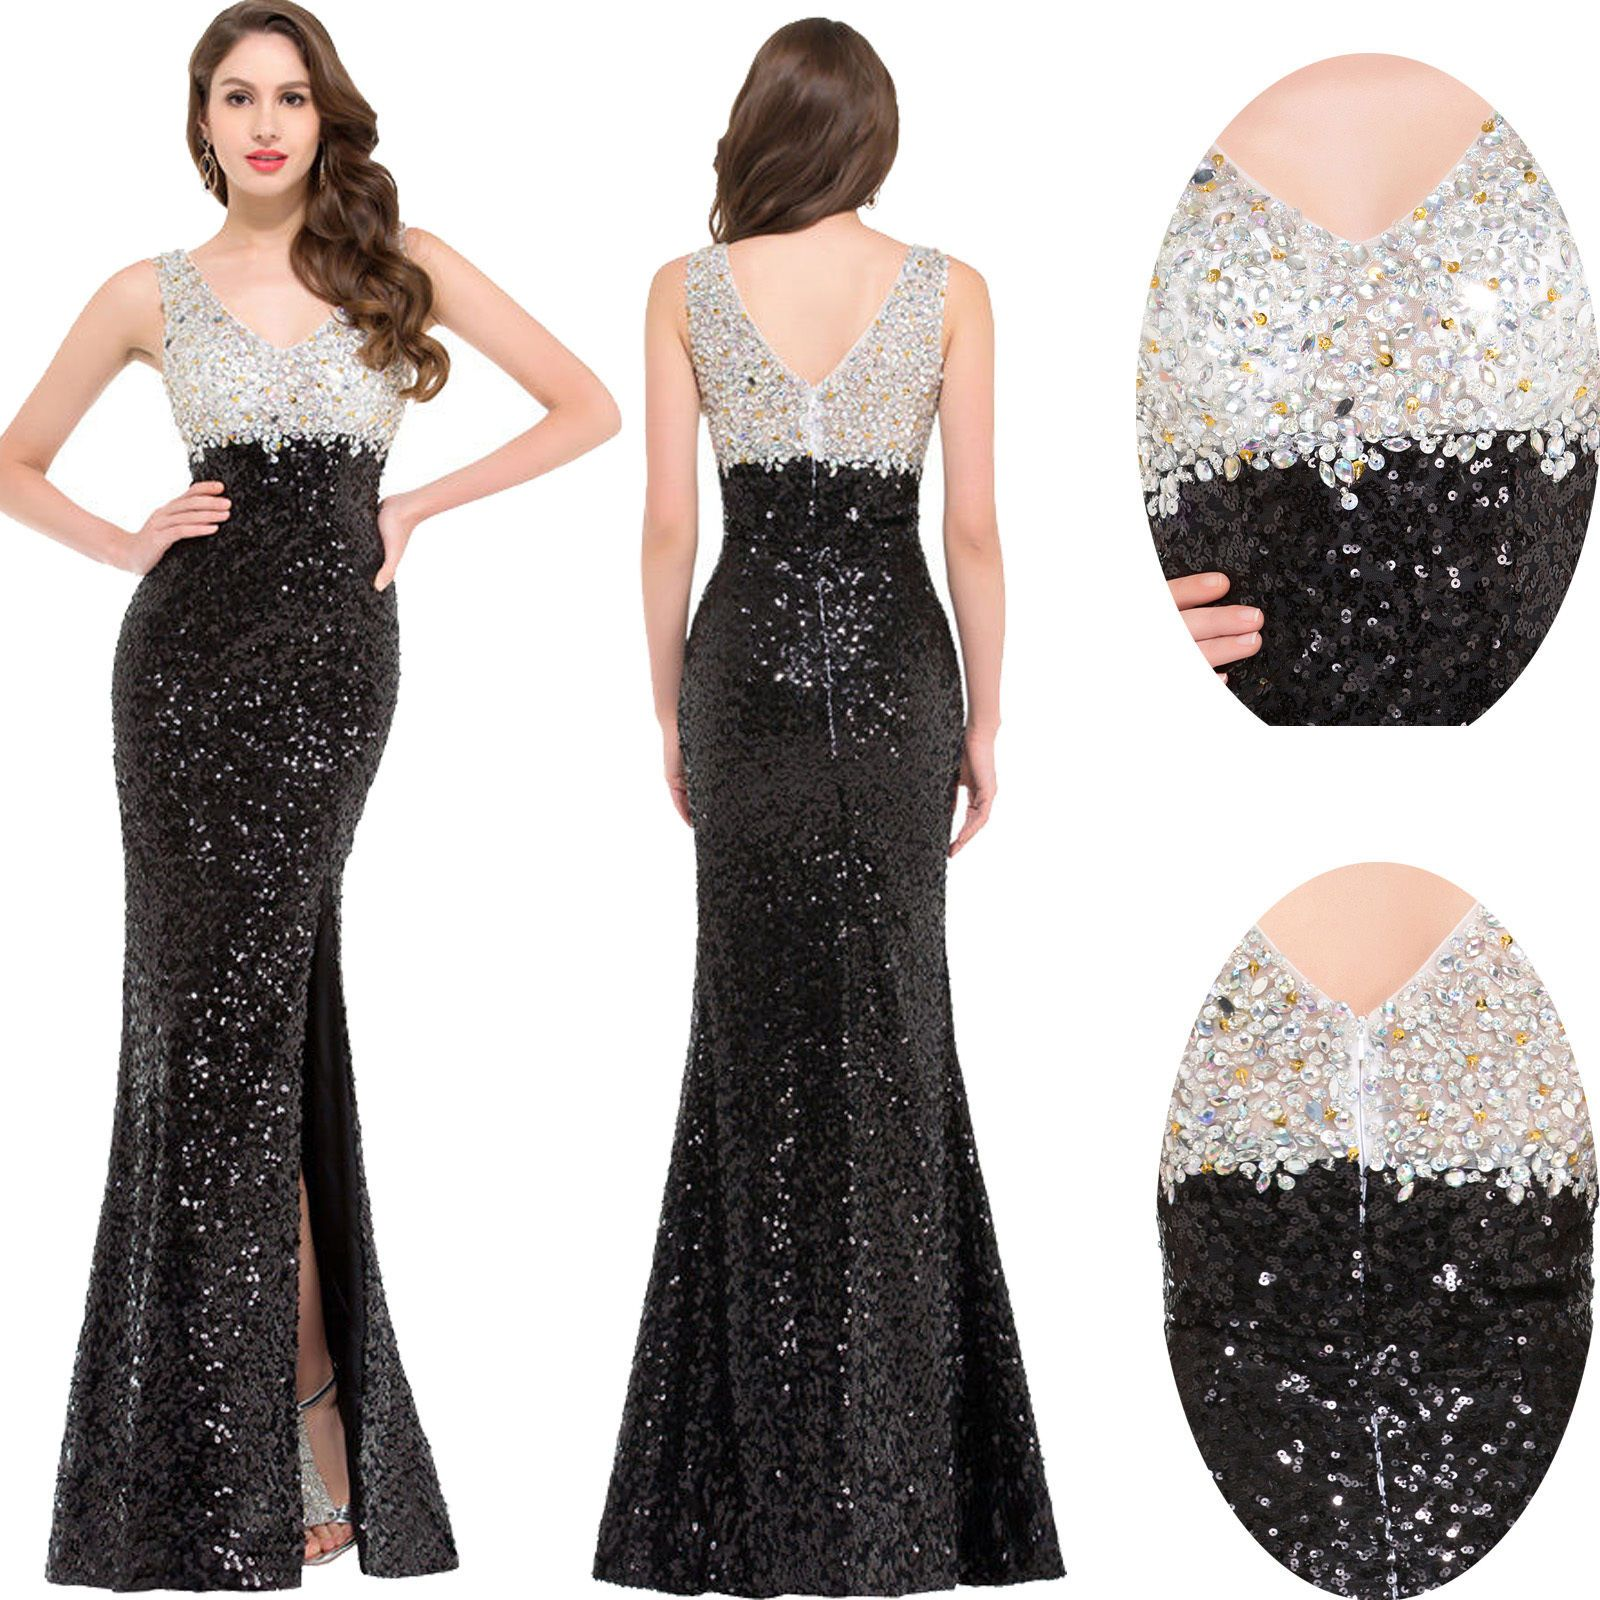 cb4c0d64b064 Sexy Long Sequins Formal Evening Ball Gown Party Prom Cocktail Bridesmaid  Dress